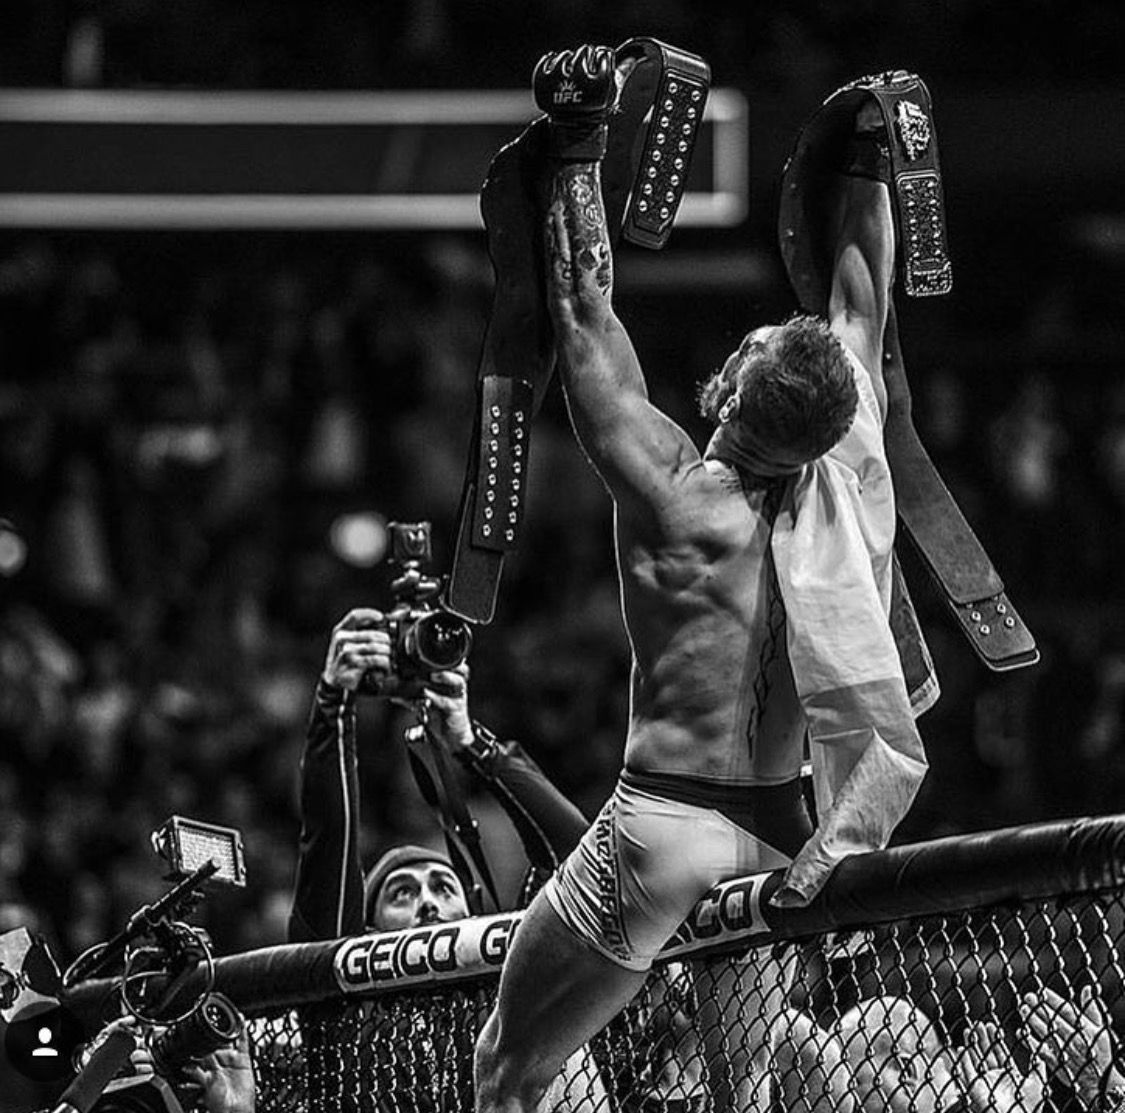 I Hope I Have A Moment Like This To Reach My Dreams And Take Over The Fight Game Conor Mcgregor Ufc Fighters Ufc